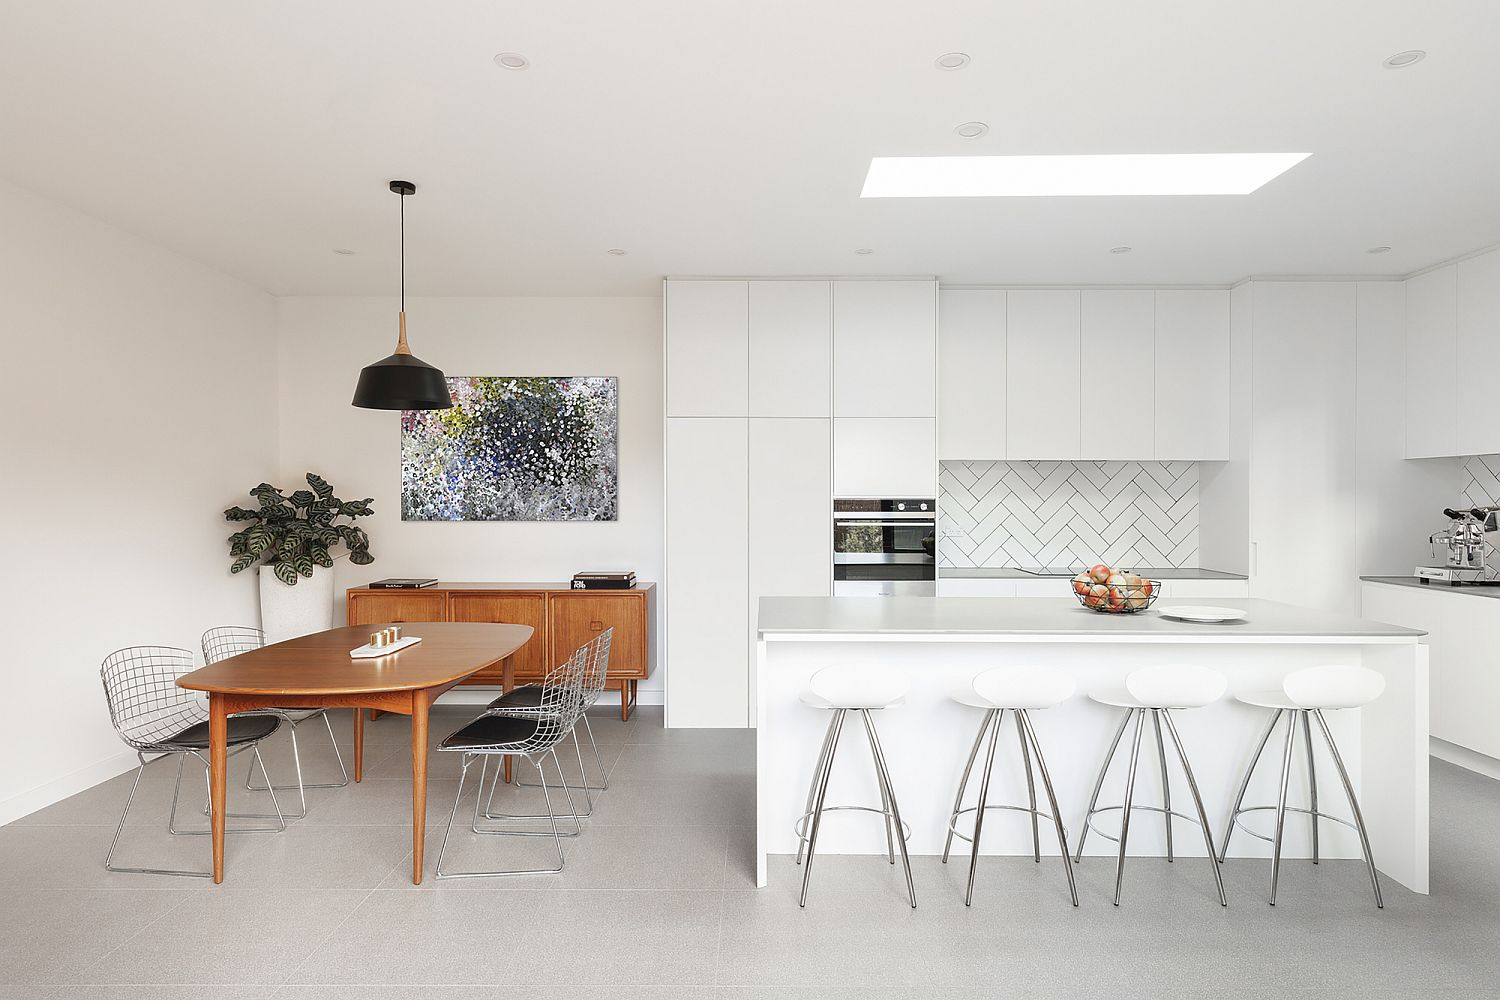 Gorgeous kitchen in white with wooden dining table that stands out visually